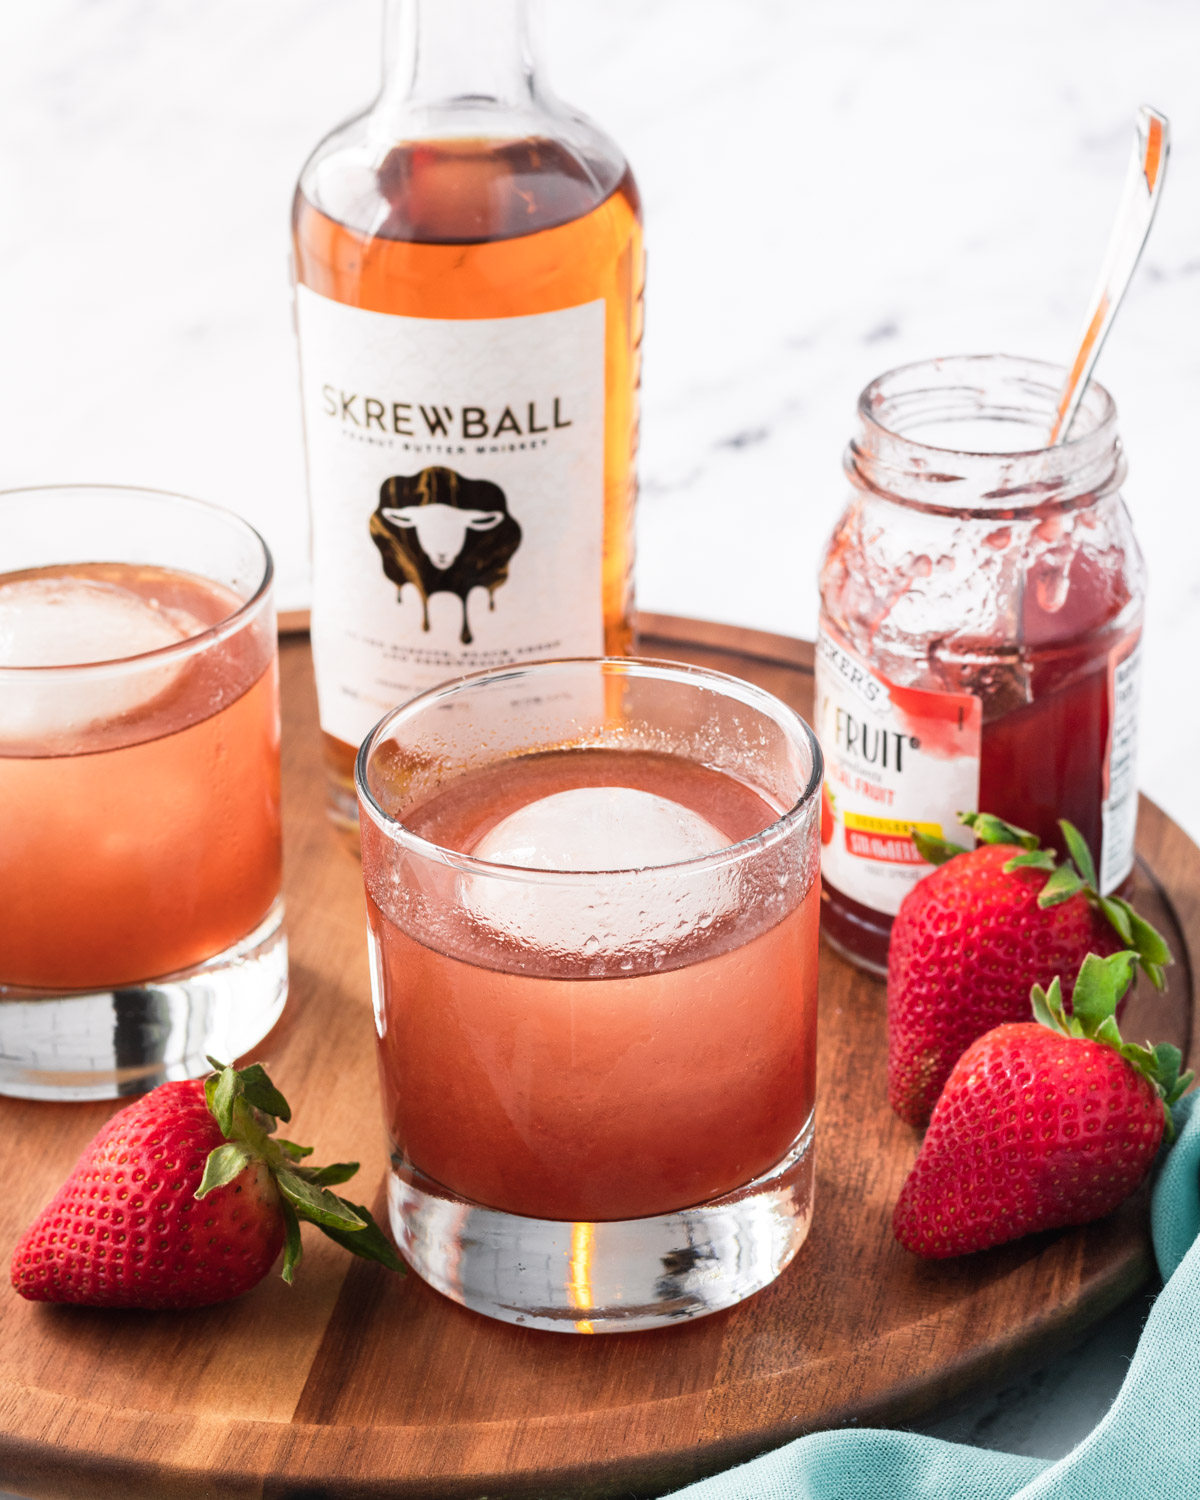 Two PB&J cocktails in rocks glasses, on  a wooden tray with Skrewball whiskey, jelly, and some strawberries.